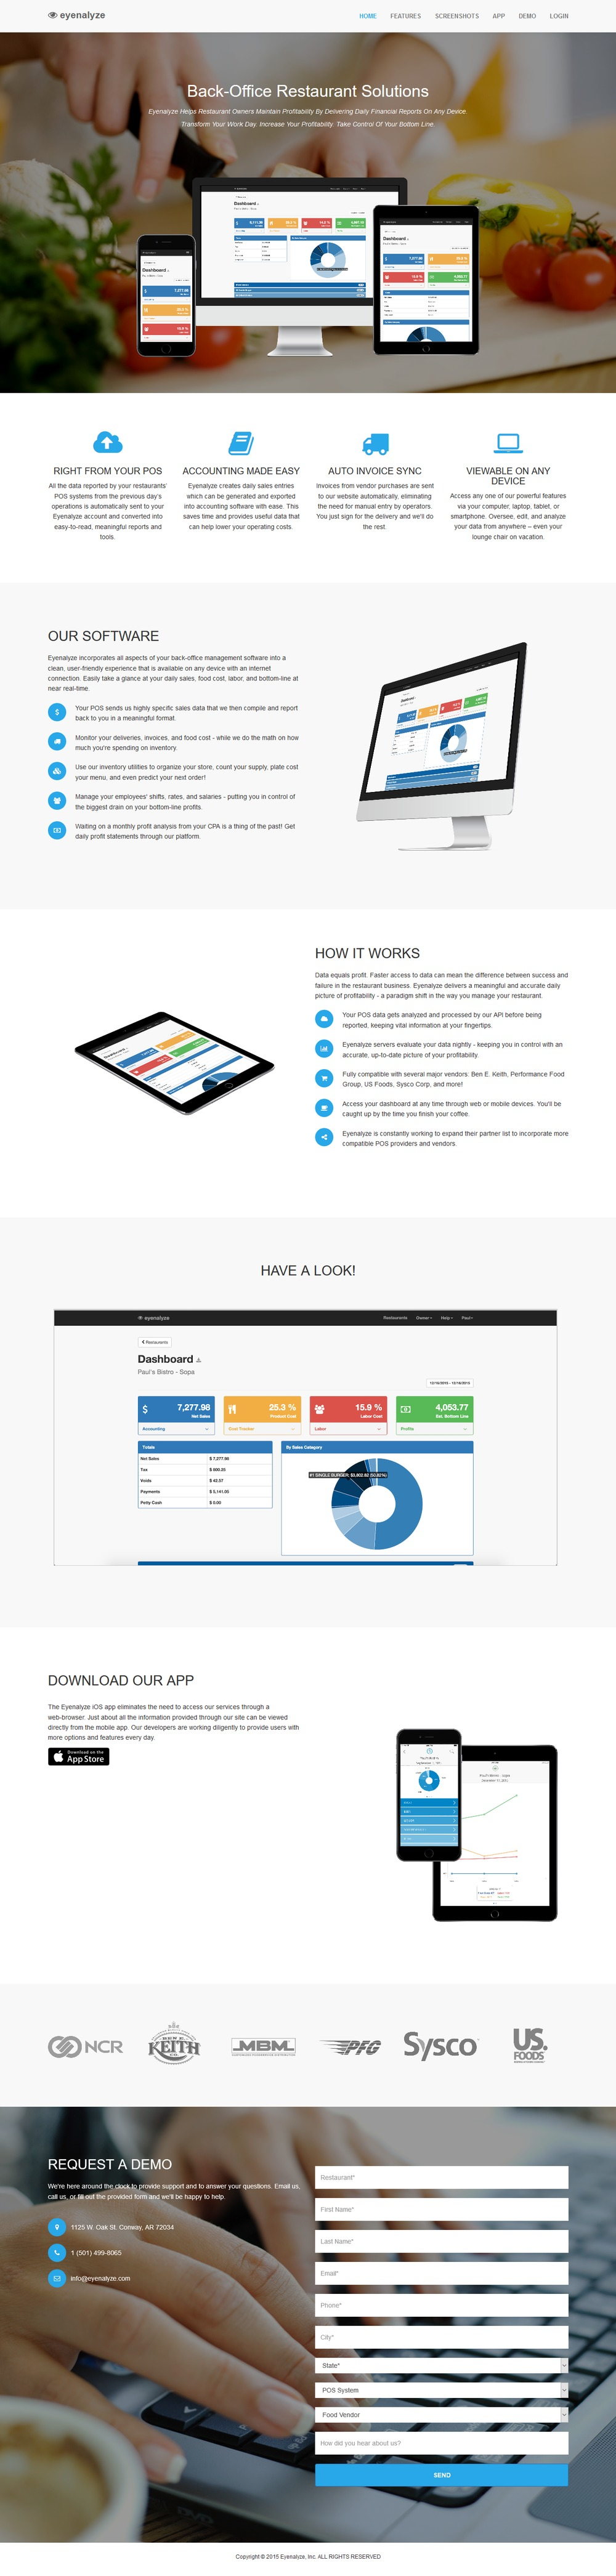 Eyenalyze - Successfully Delivered Projects On-Time and On-Budget. Improved Website Conversation Rate By 80% Against Existing Control.